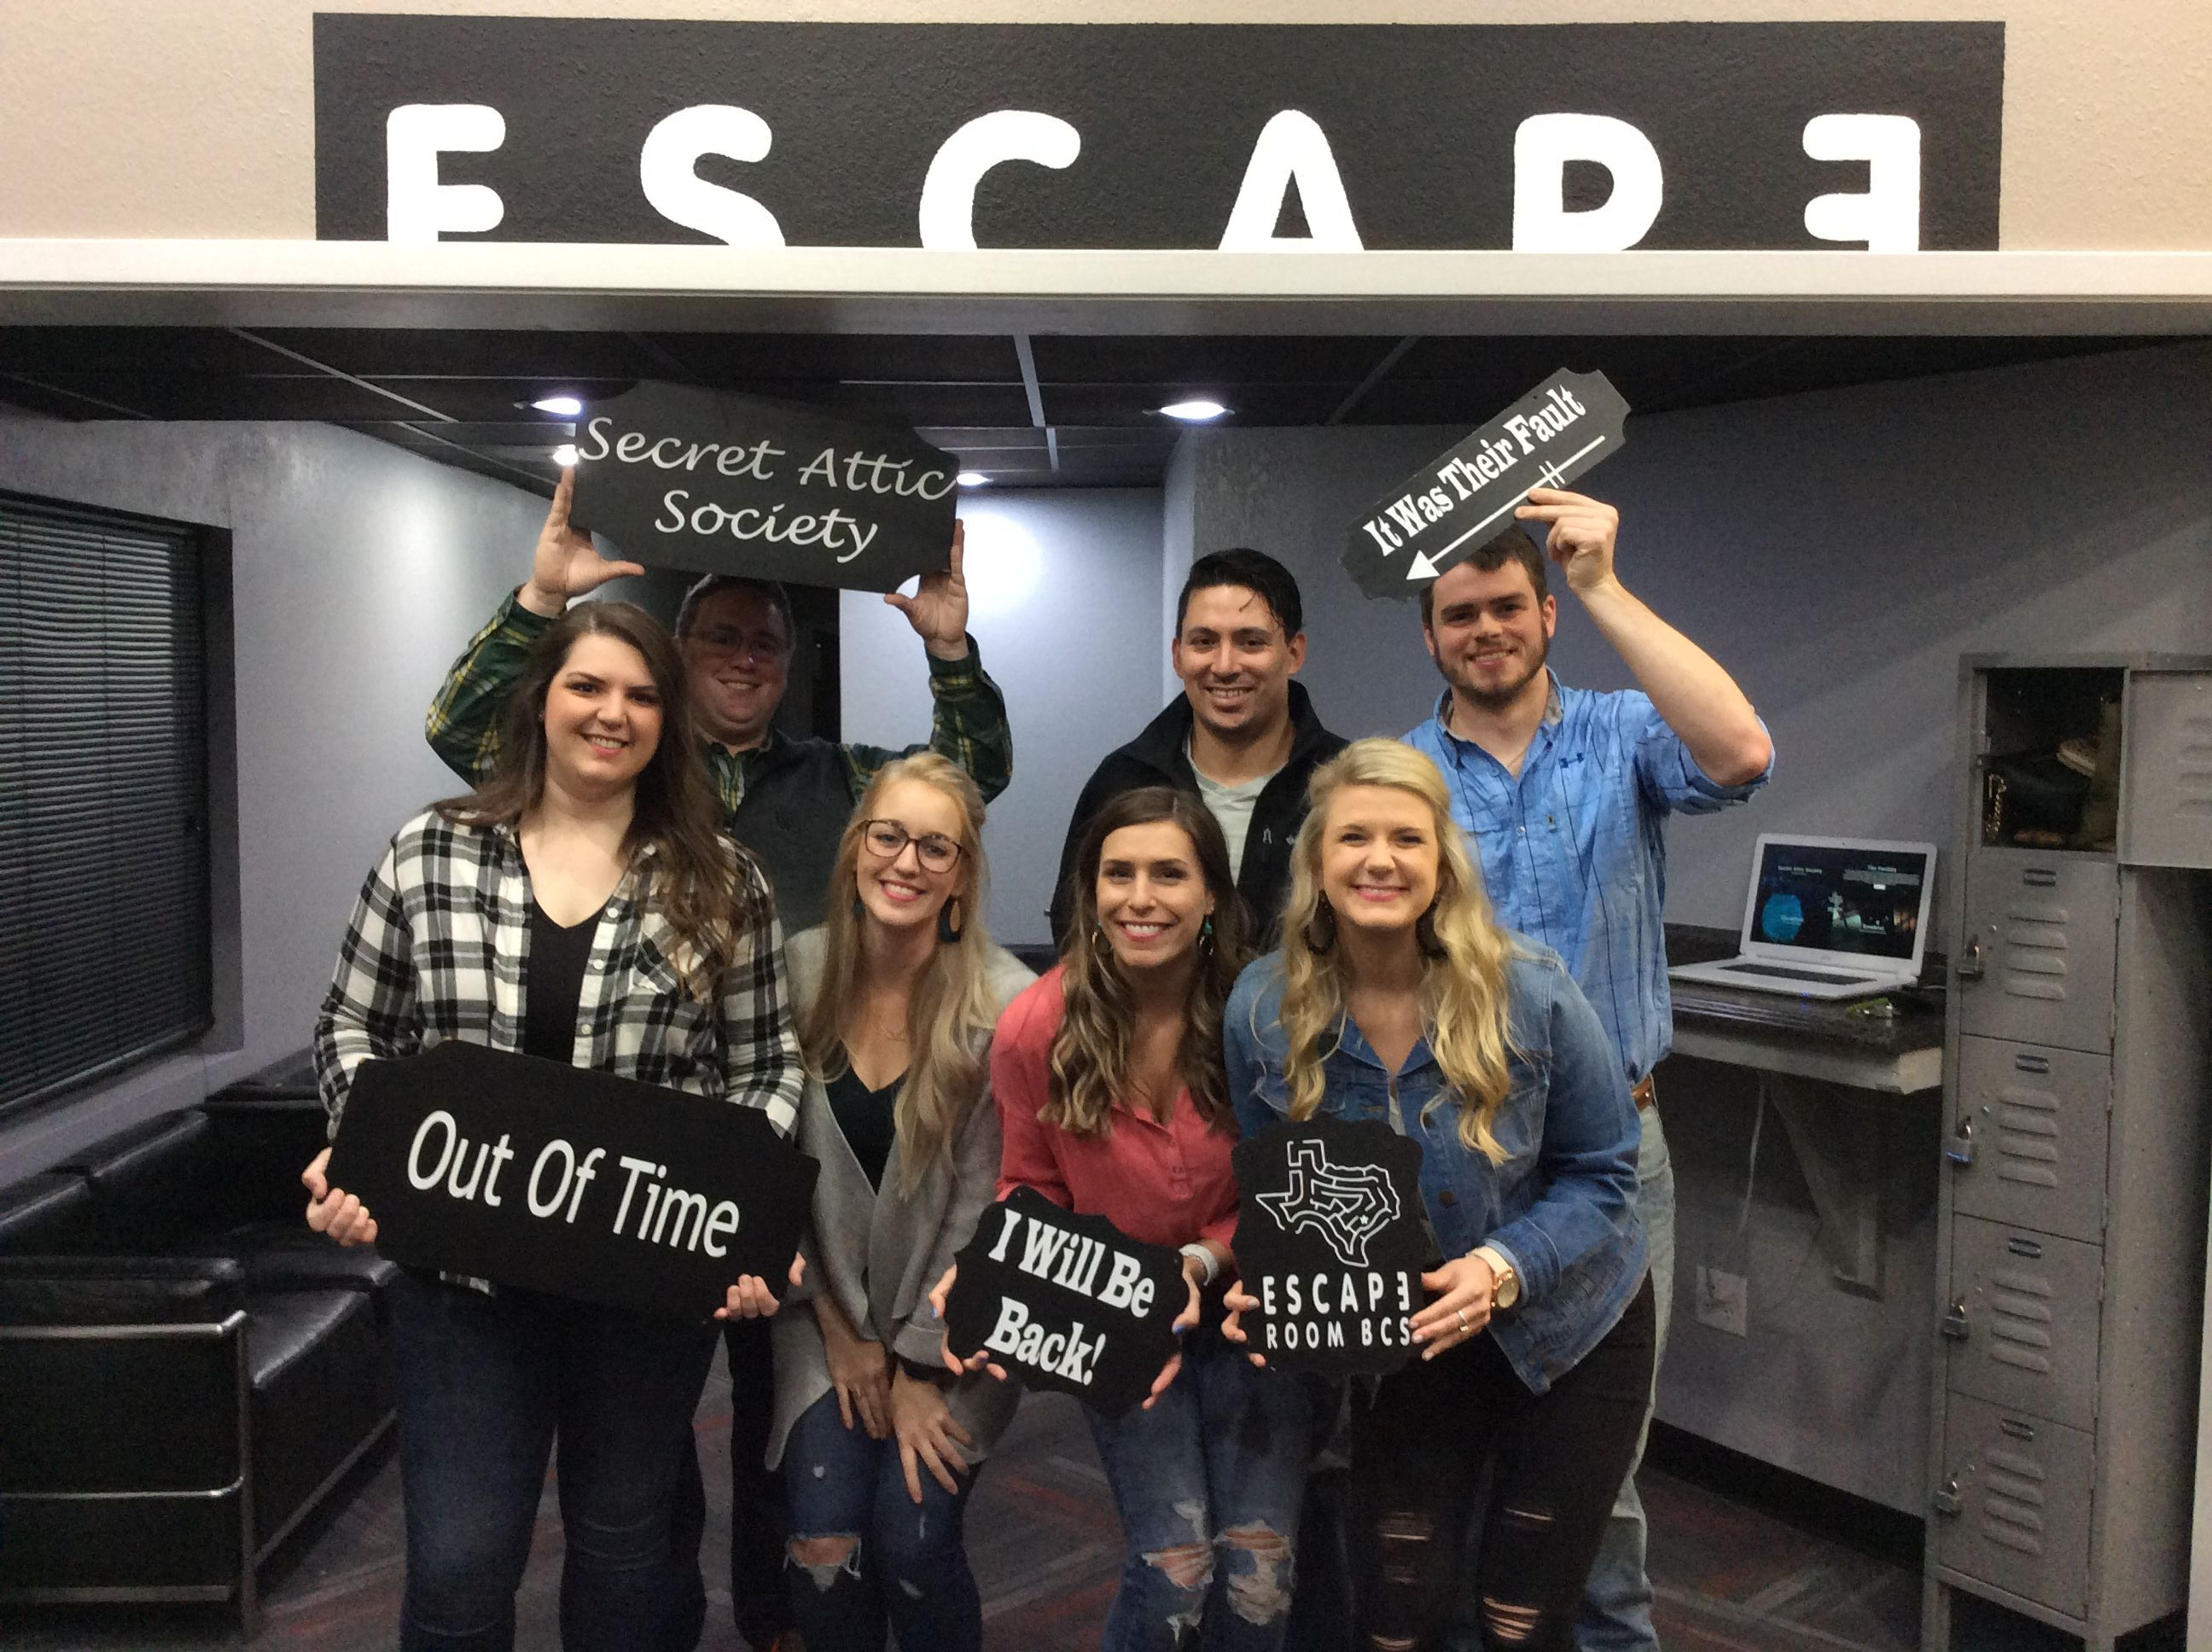 This Group Made A Respectable Attempt At The Secret Attic Society In 2020 Society Secret Escape Room